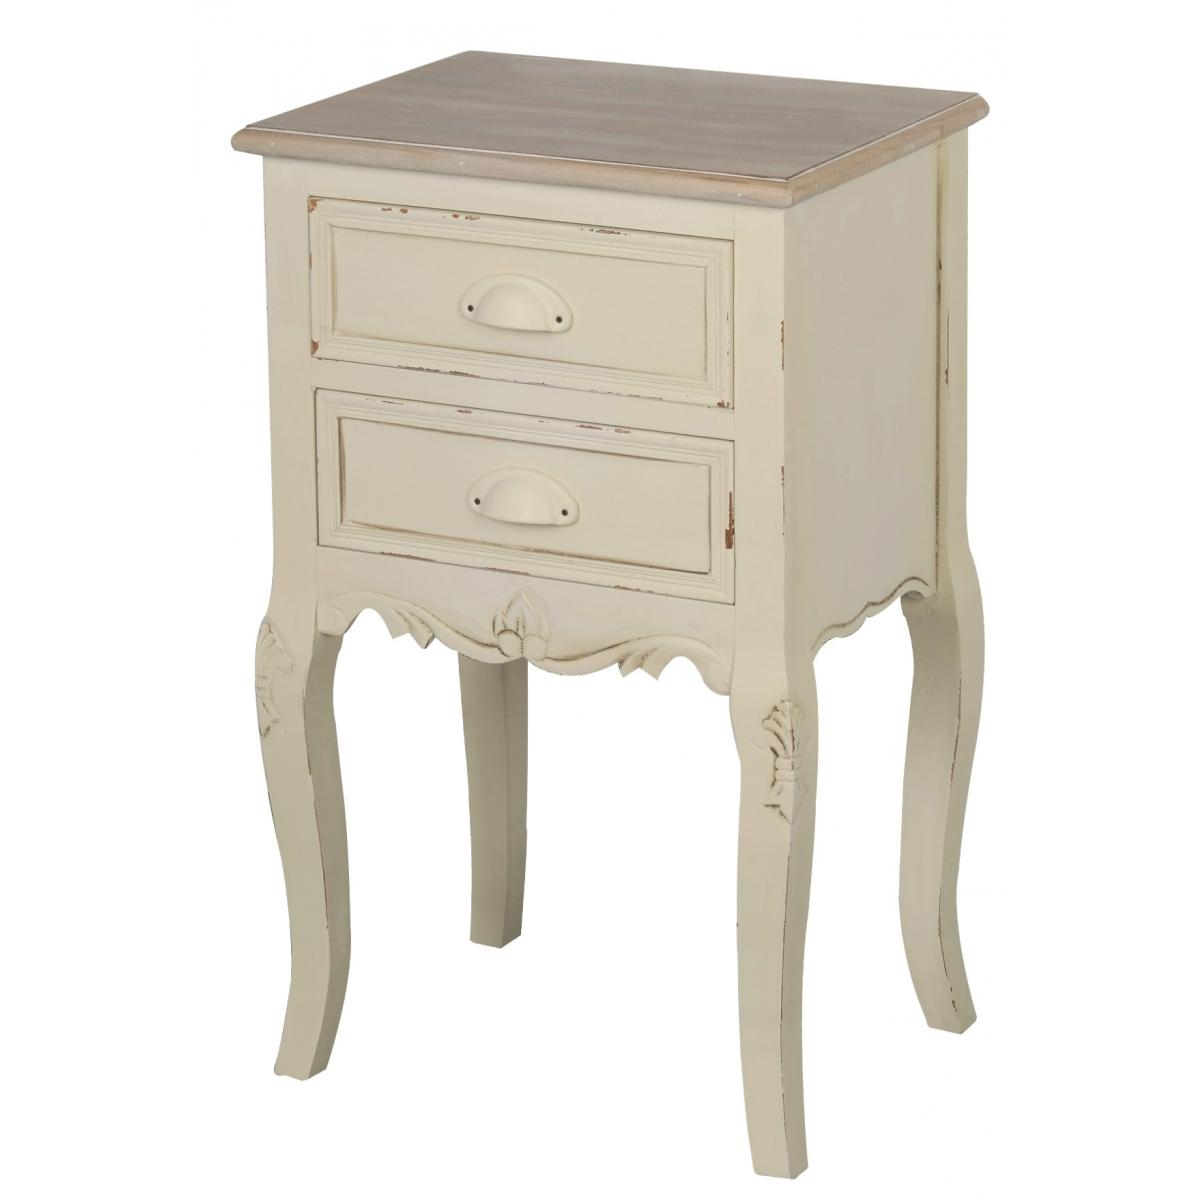 Cabinet din lemn de plop si MDF, cu 2 sertare Rimini RI021 Cream / Light Brown, l41xA31xH67 cm imagine